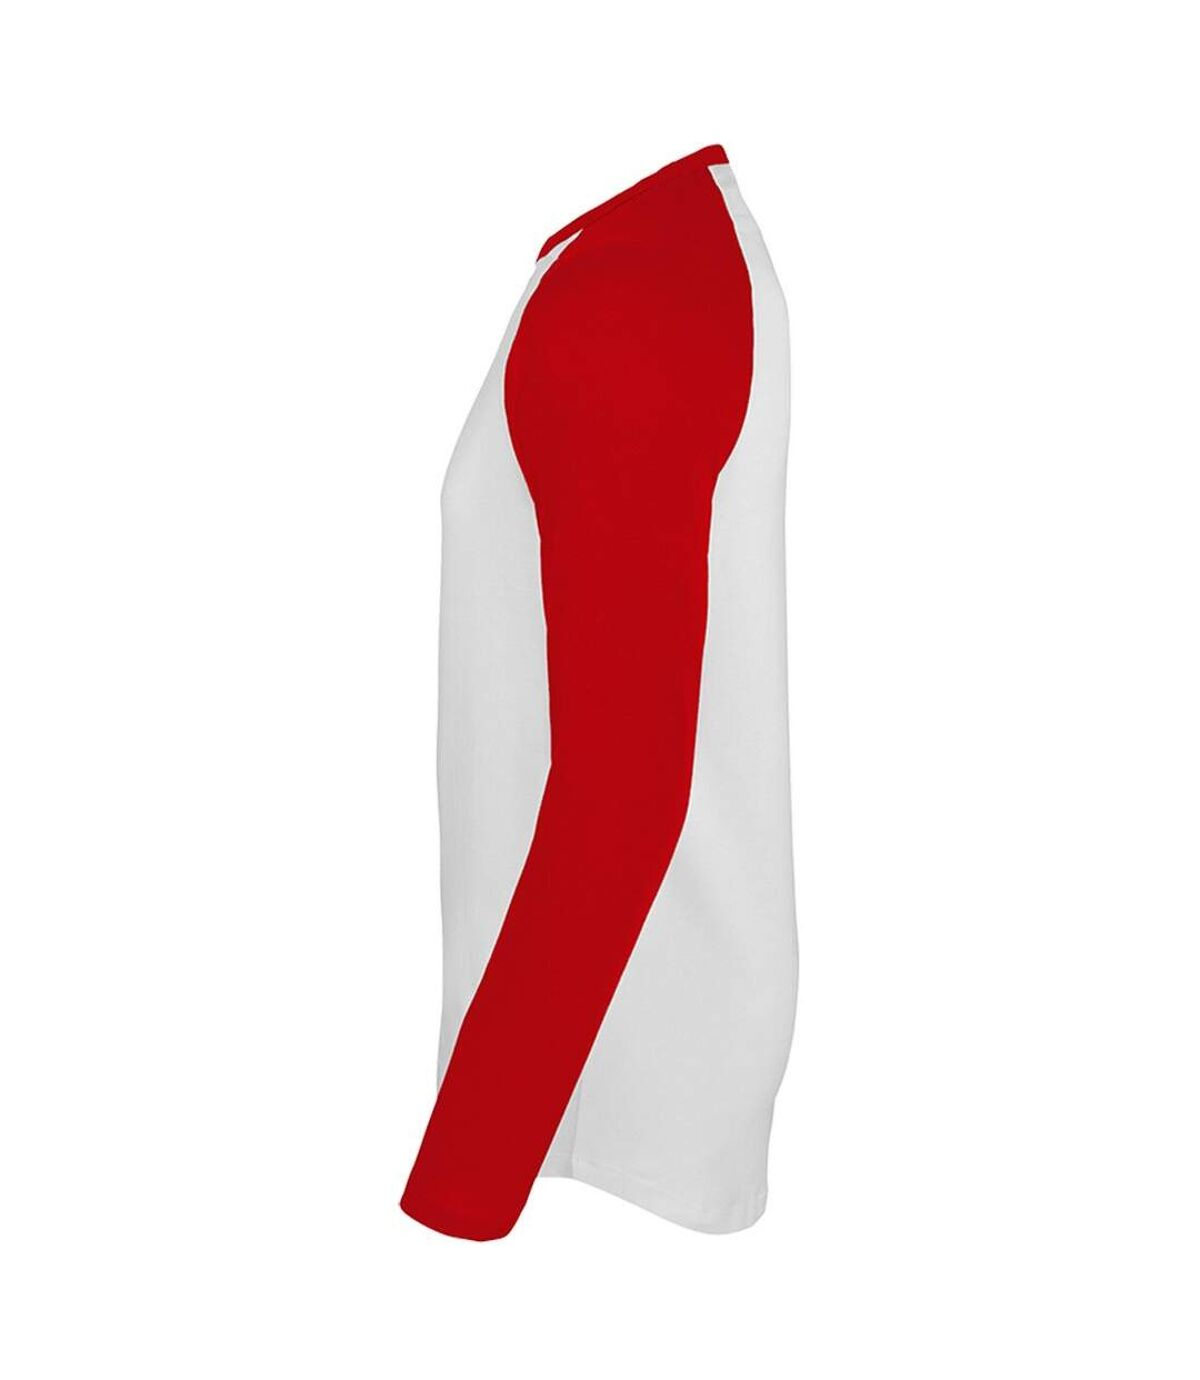 SOLS - T-shirt manches longues FUNKY - Homme (Blanc/rouge) - UTPC3513